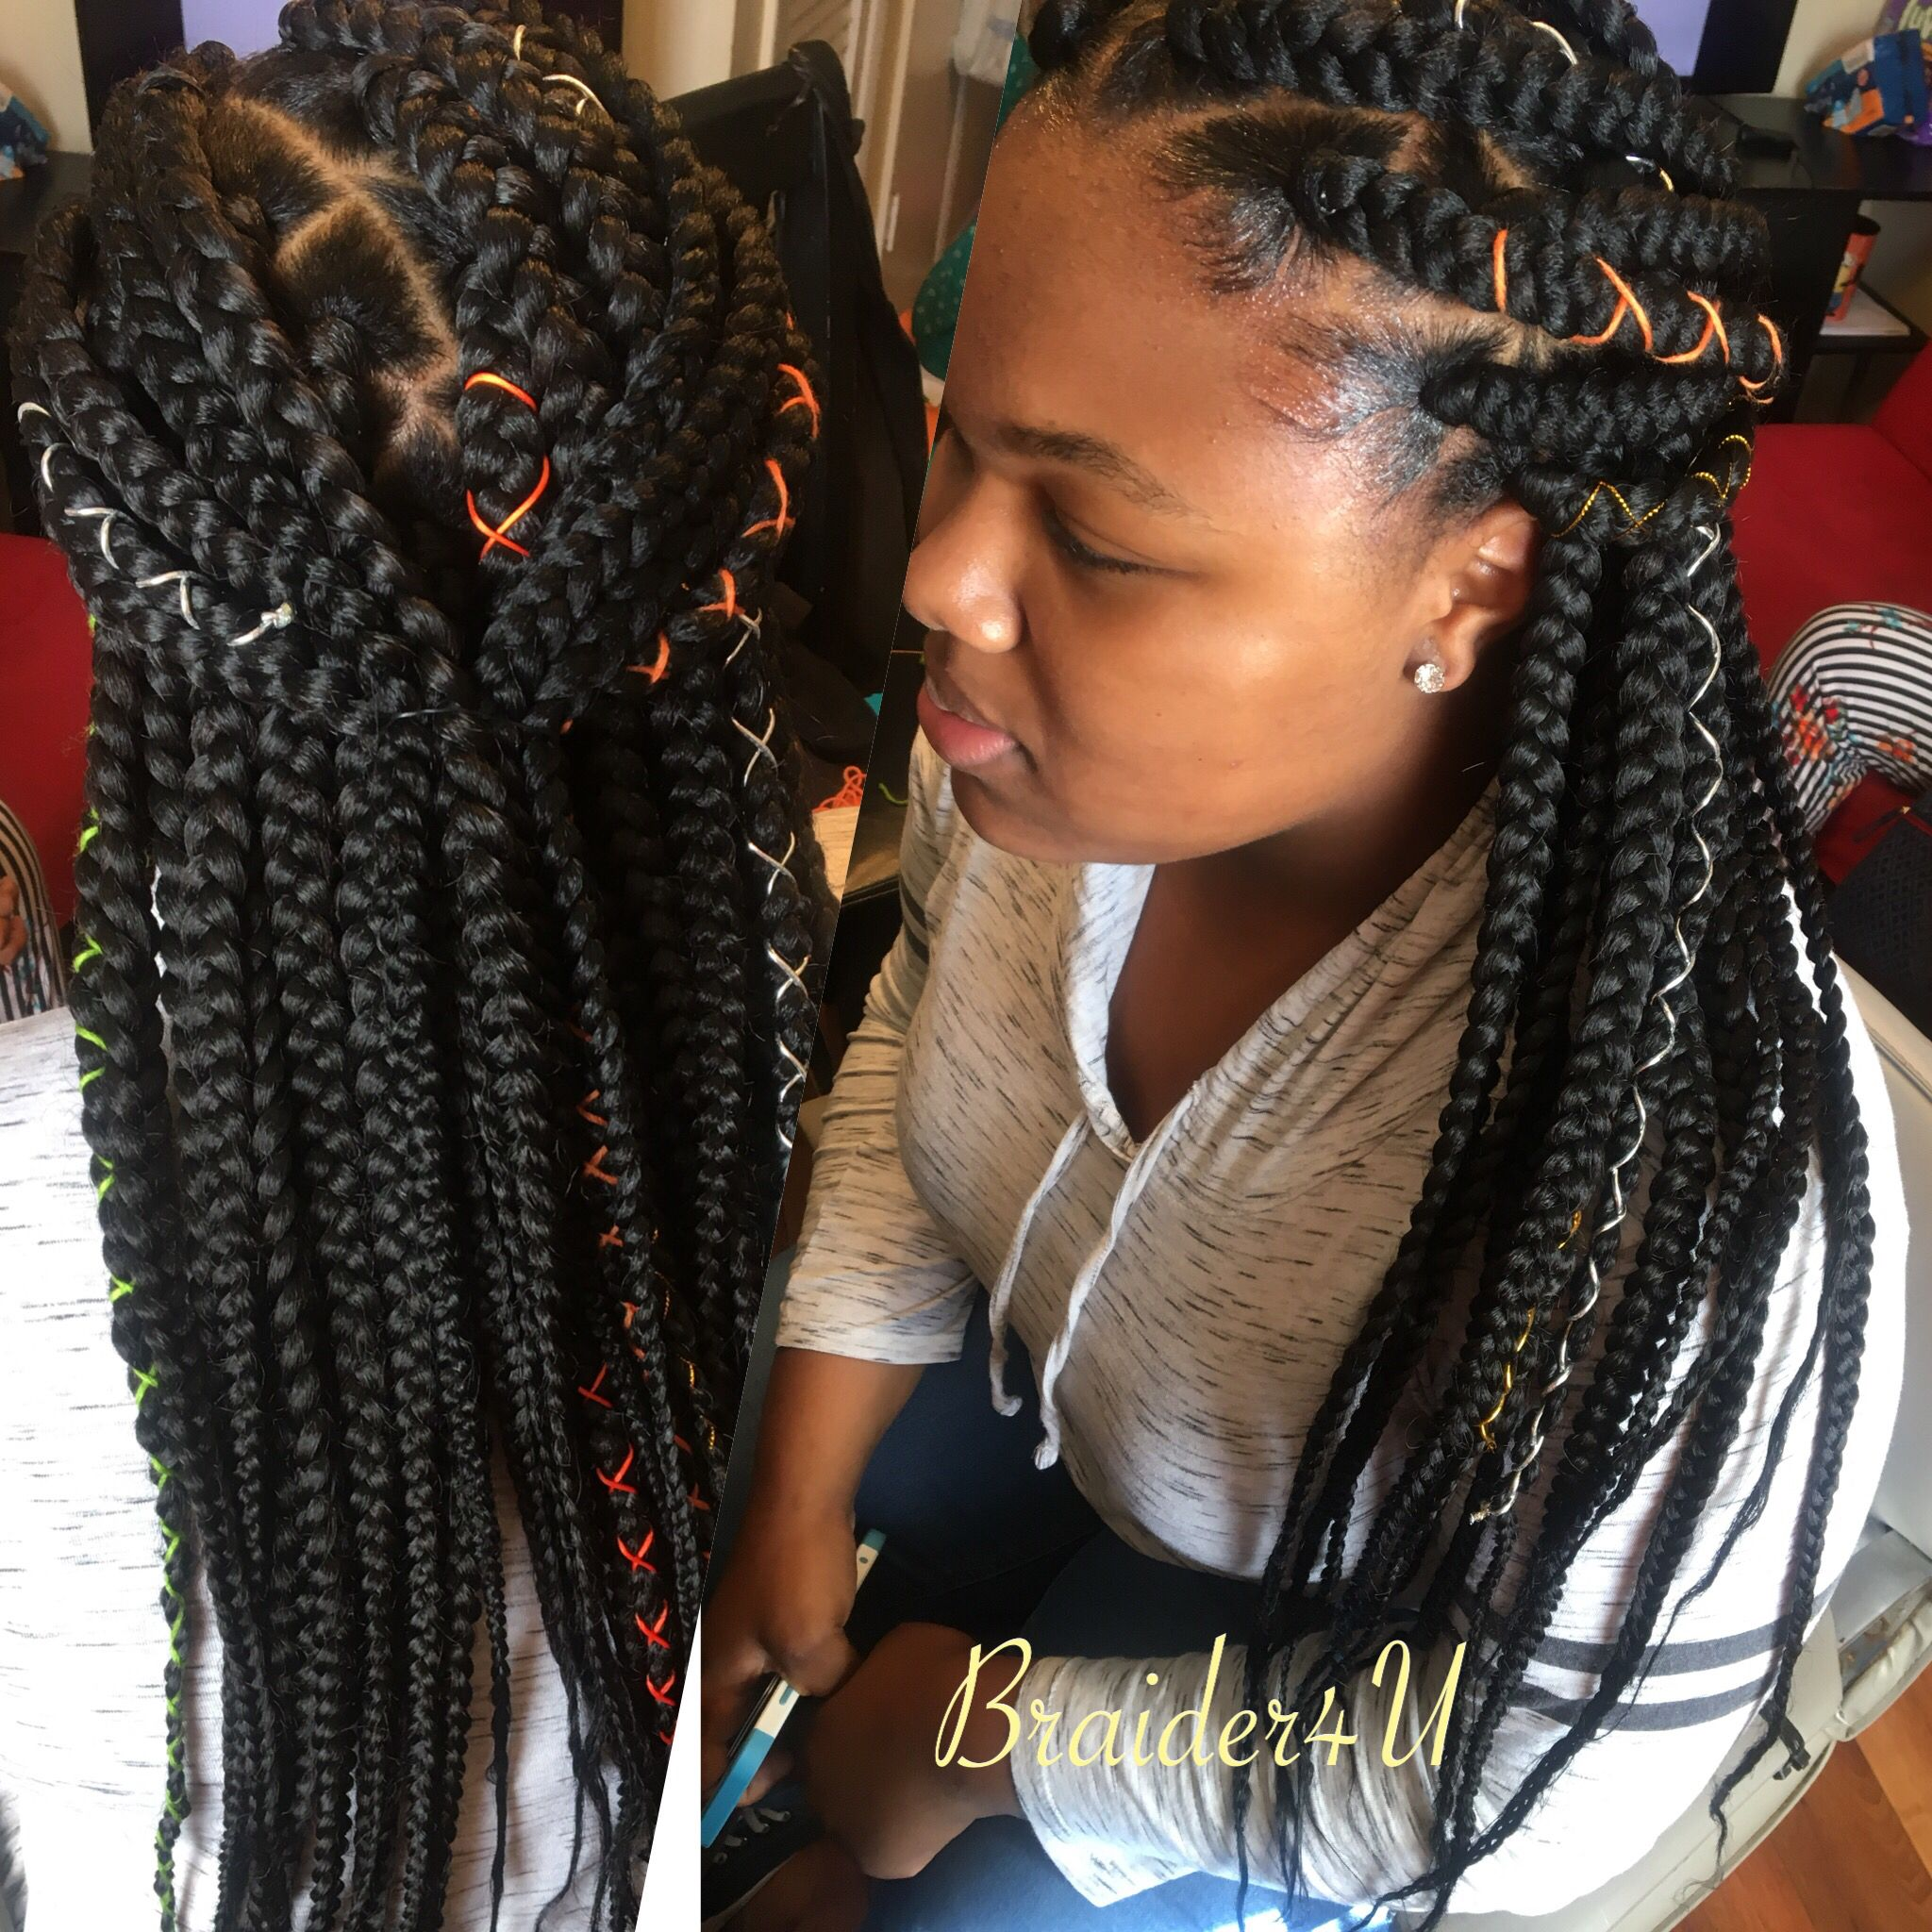 Hair hairstyles braids boxbraids protectivestyles african